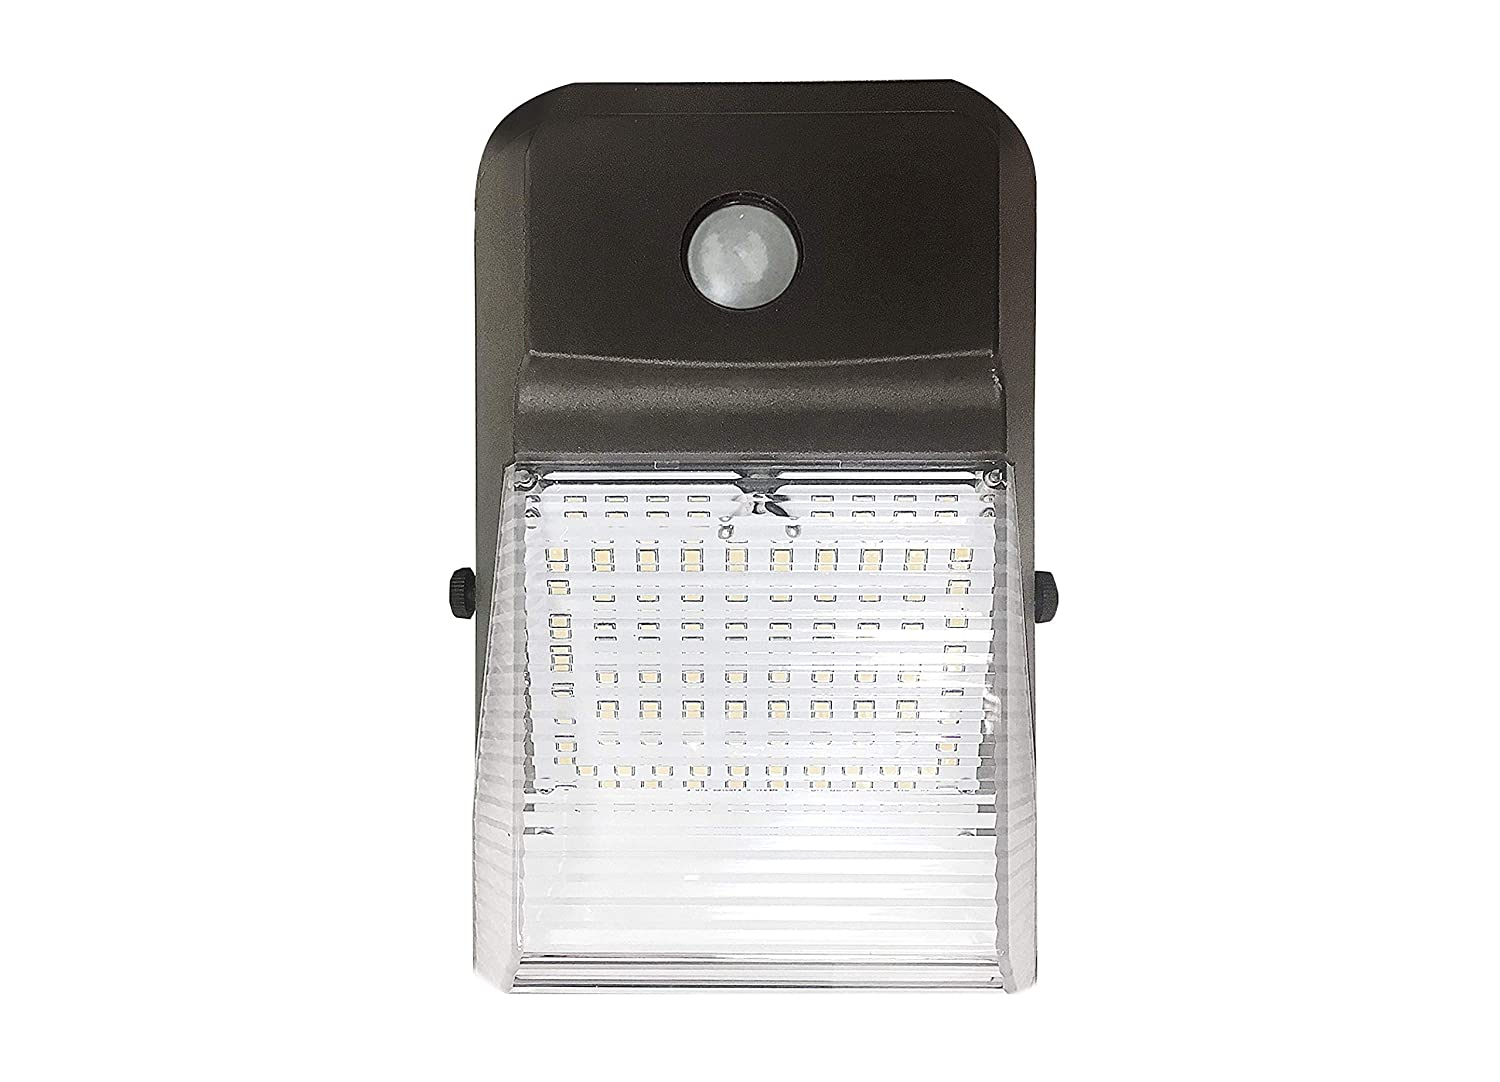 ASD 15W LED Wall Pack Light with Dusk to Down Photocell, Outdoor, Commercial Grade, 3000K (Warm White), Bronze, Waterproof IP 65, Security Area Lighting, UL Certified, DLC Listed ASD Lighting Corp